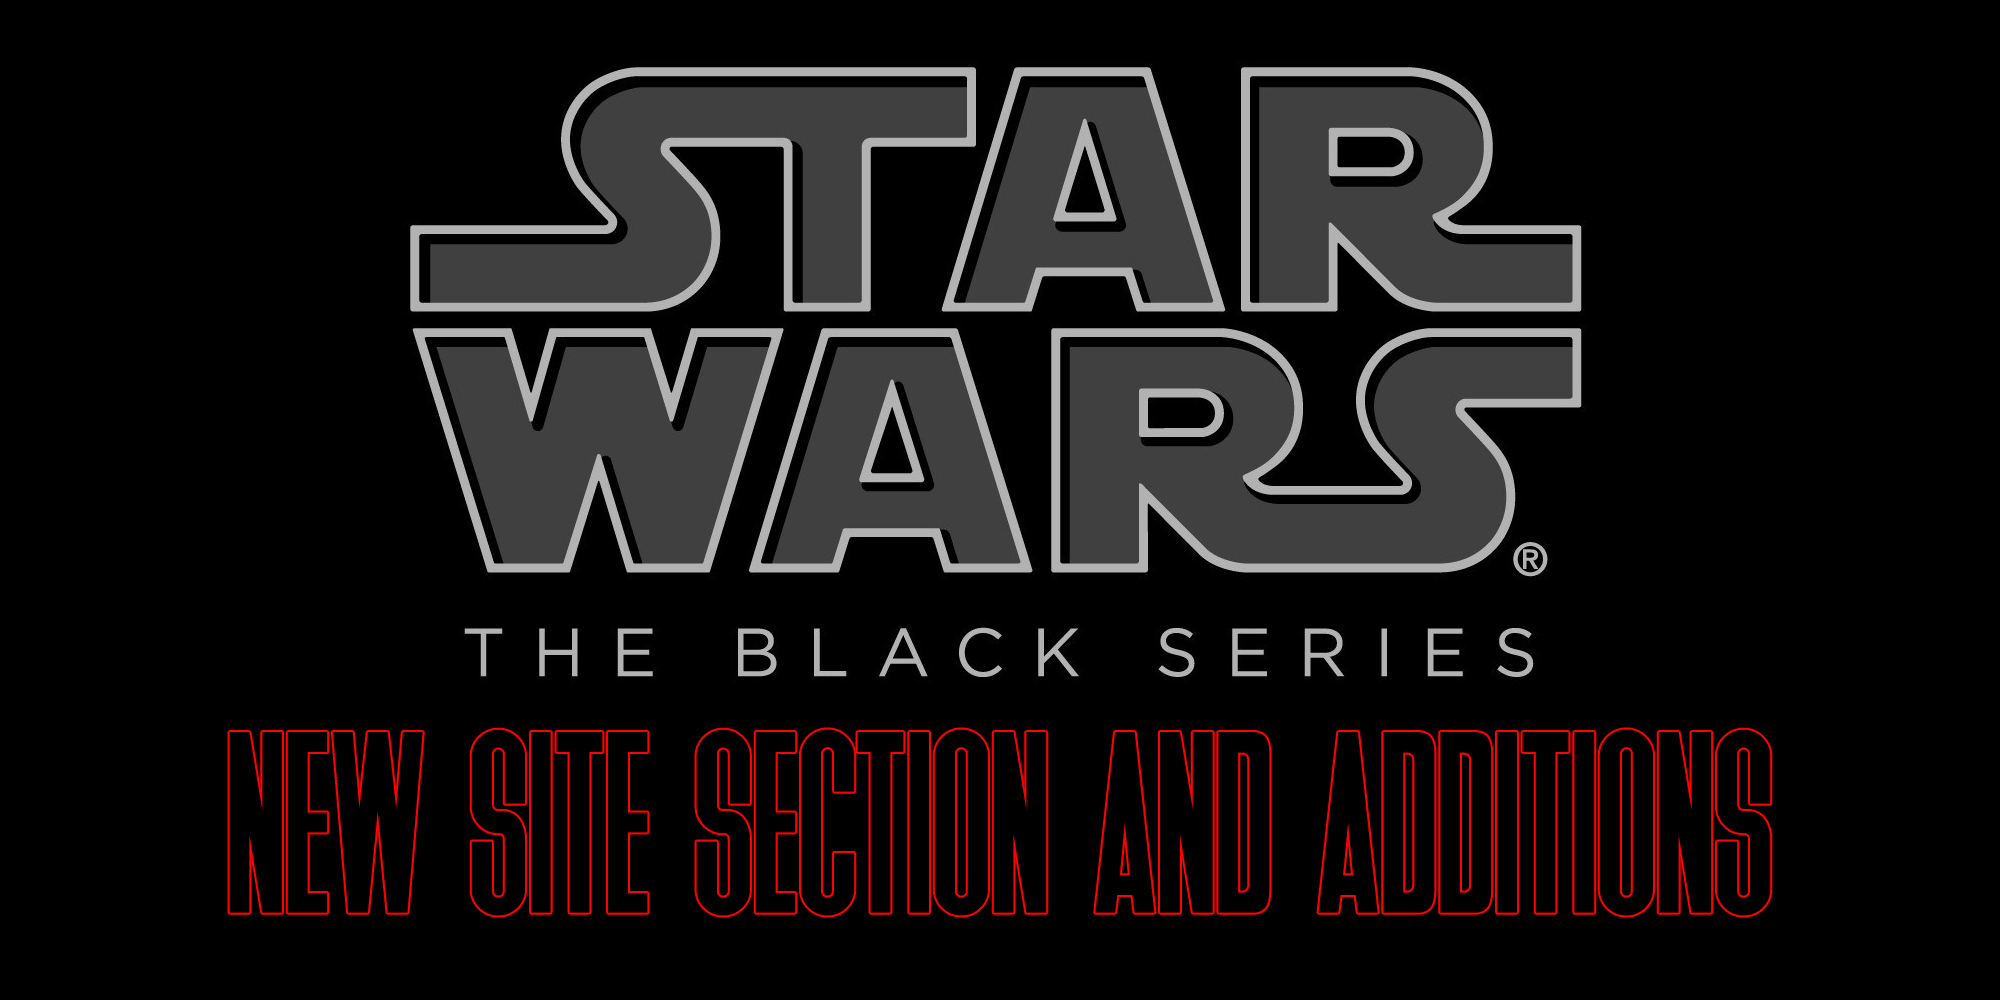 New Black Series Site Section And New Additions